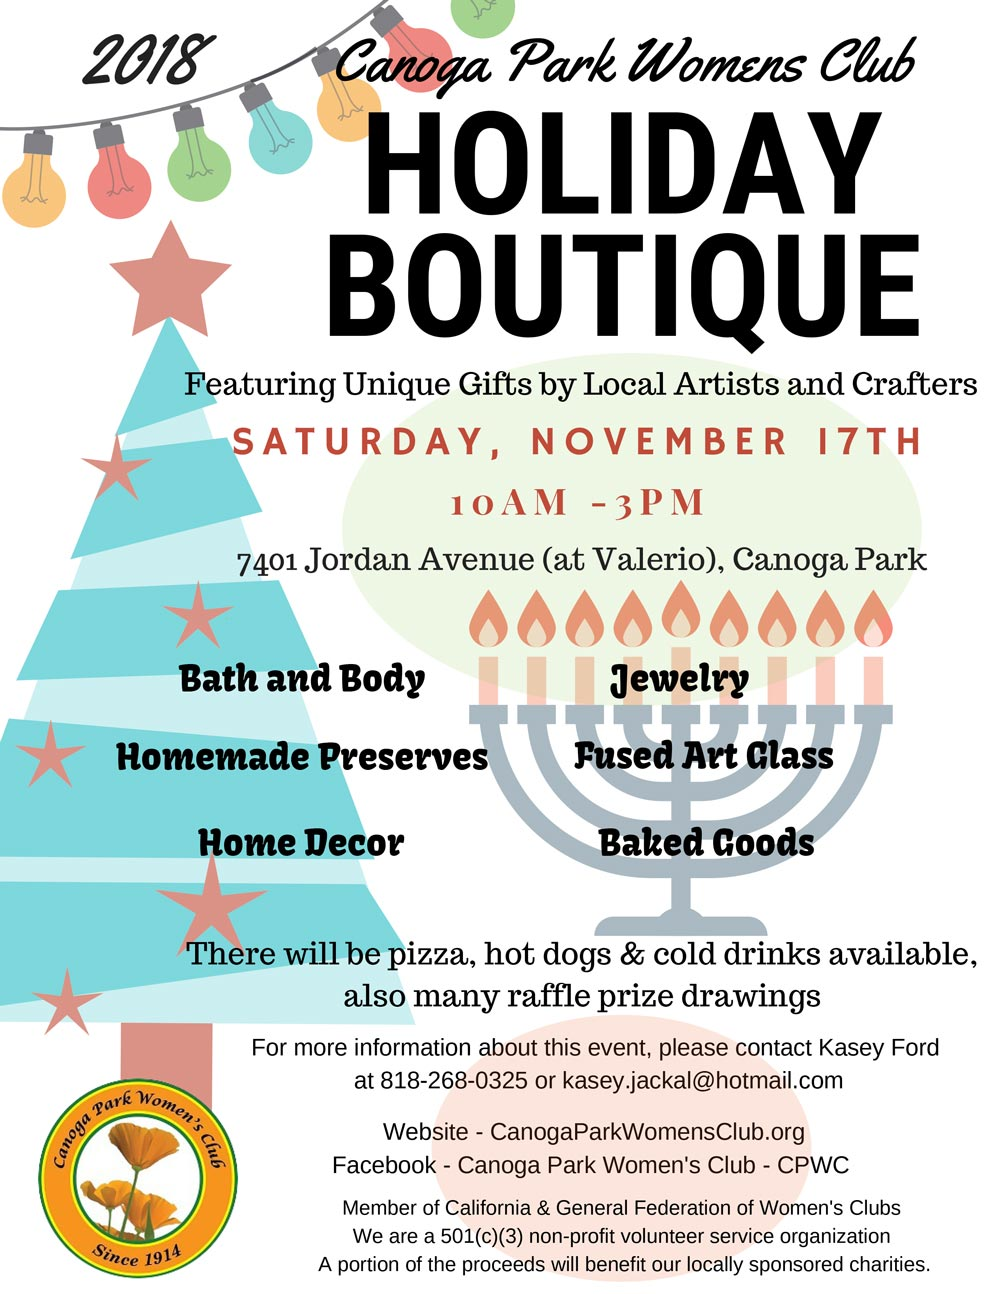 2018 Canoga Park Women's Club Holiday Boutique